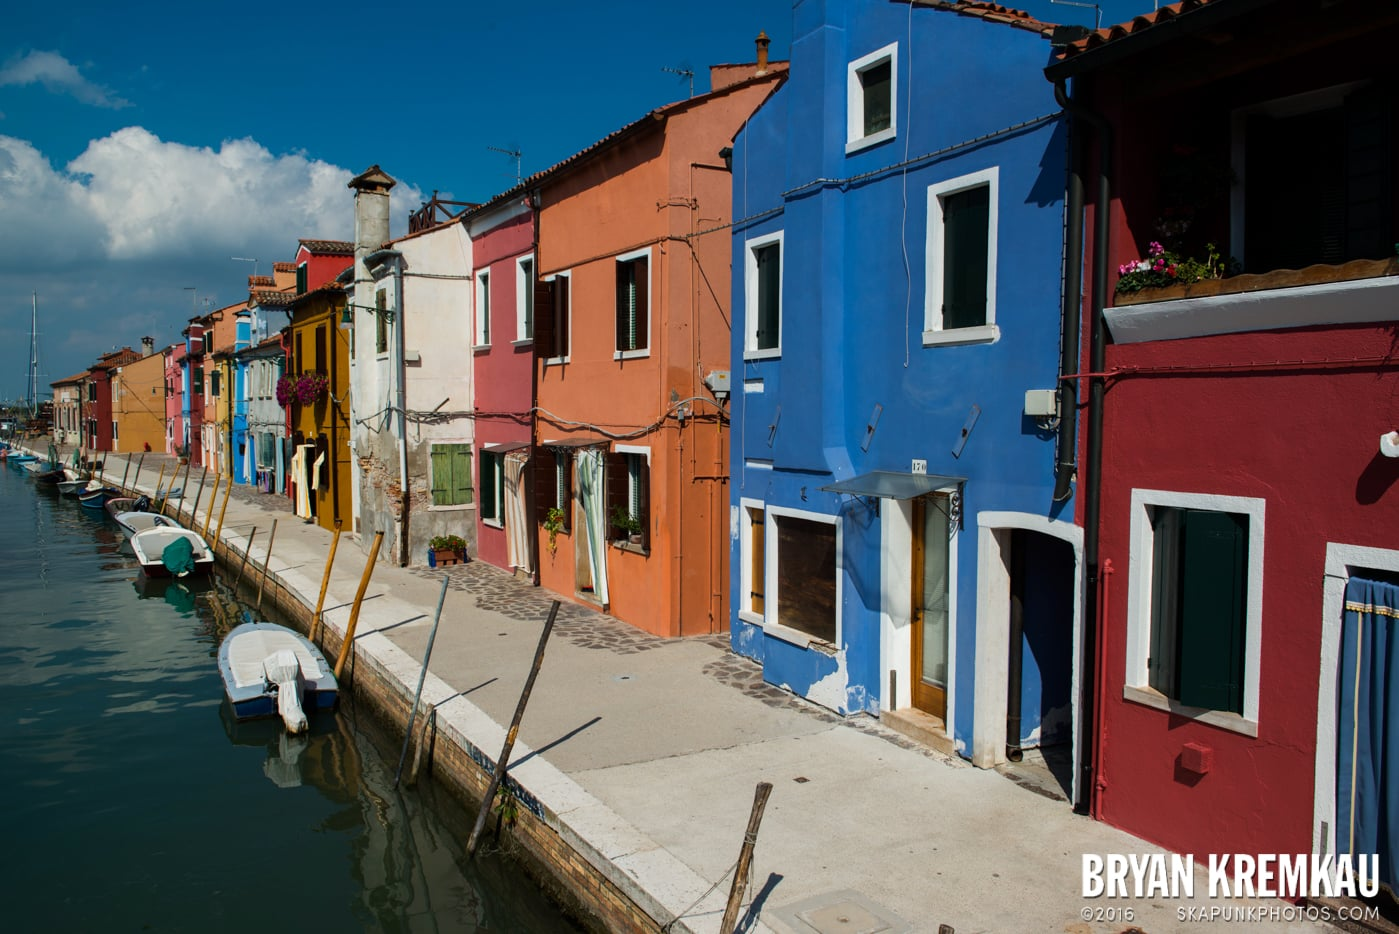 Italy Vacation - Day 6: Murano, Burano, Venice - 9.14.13 (45)